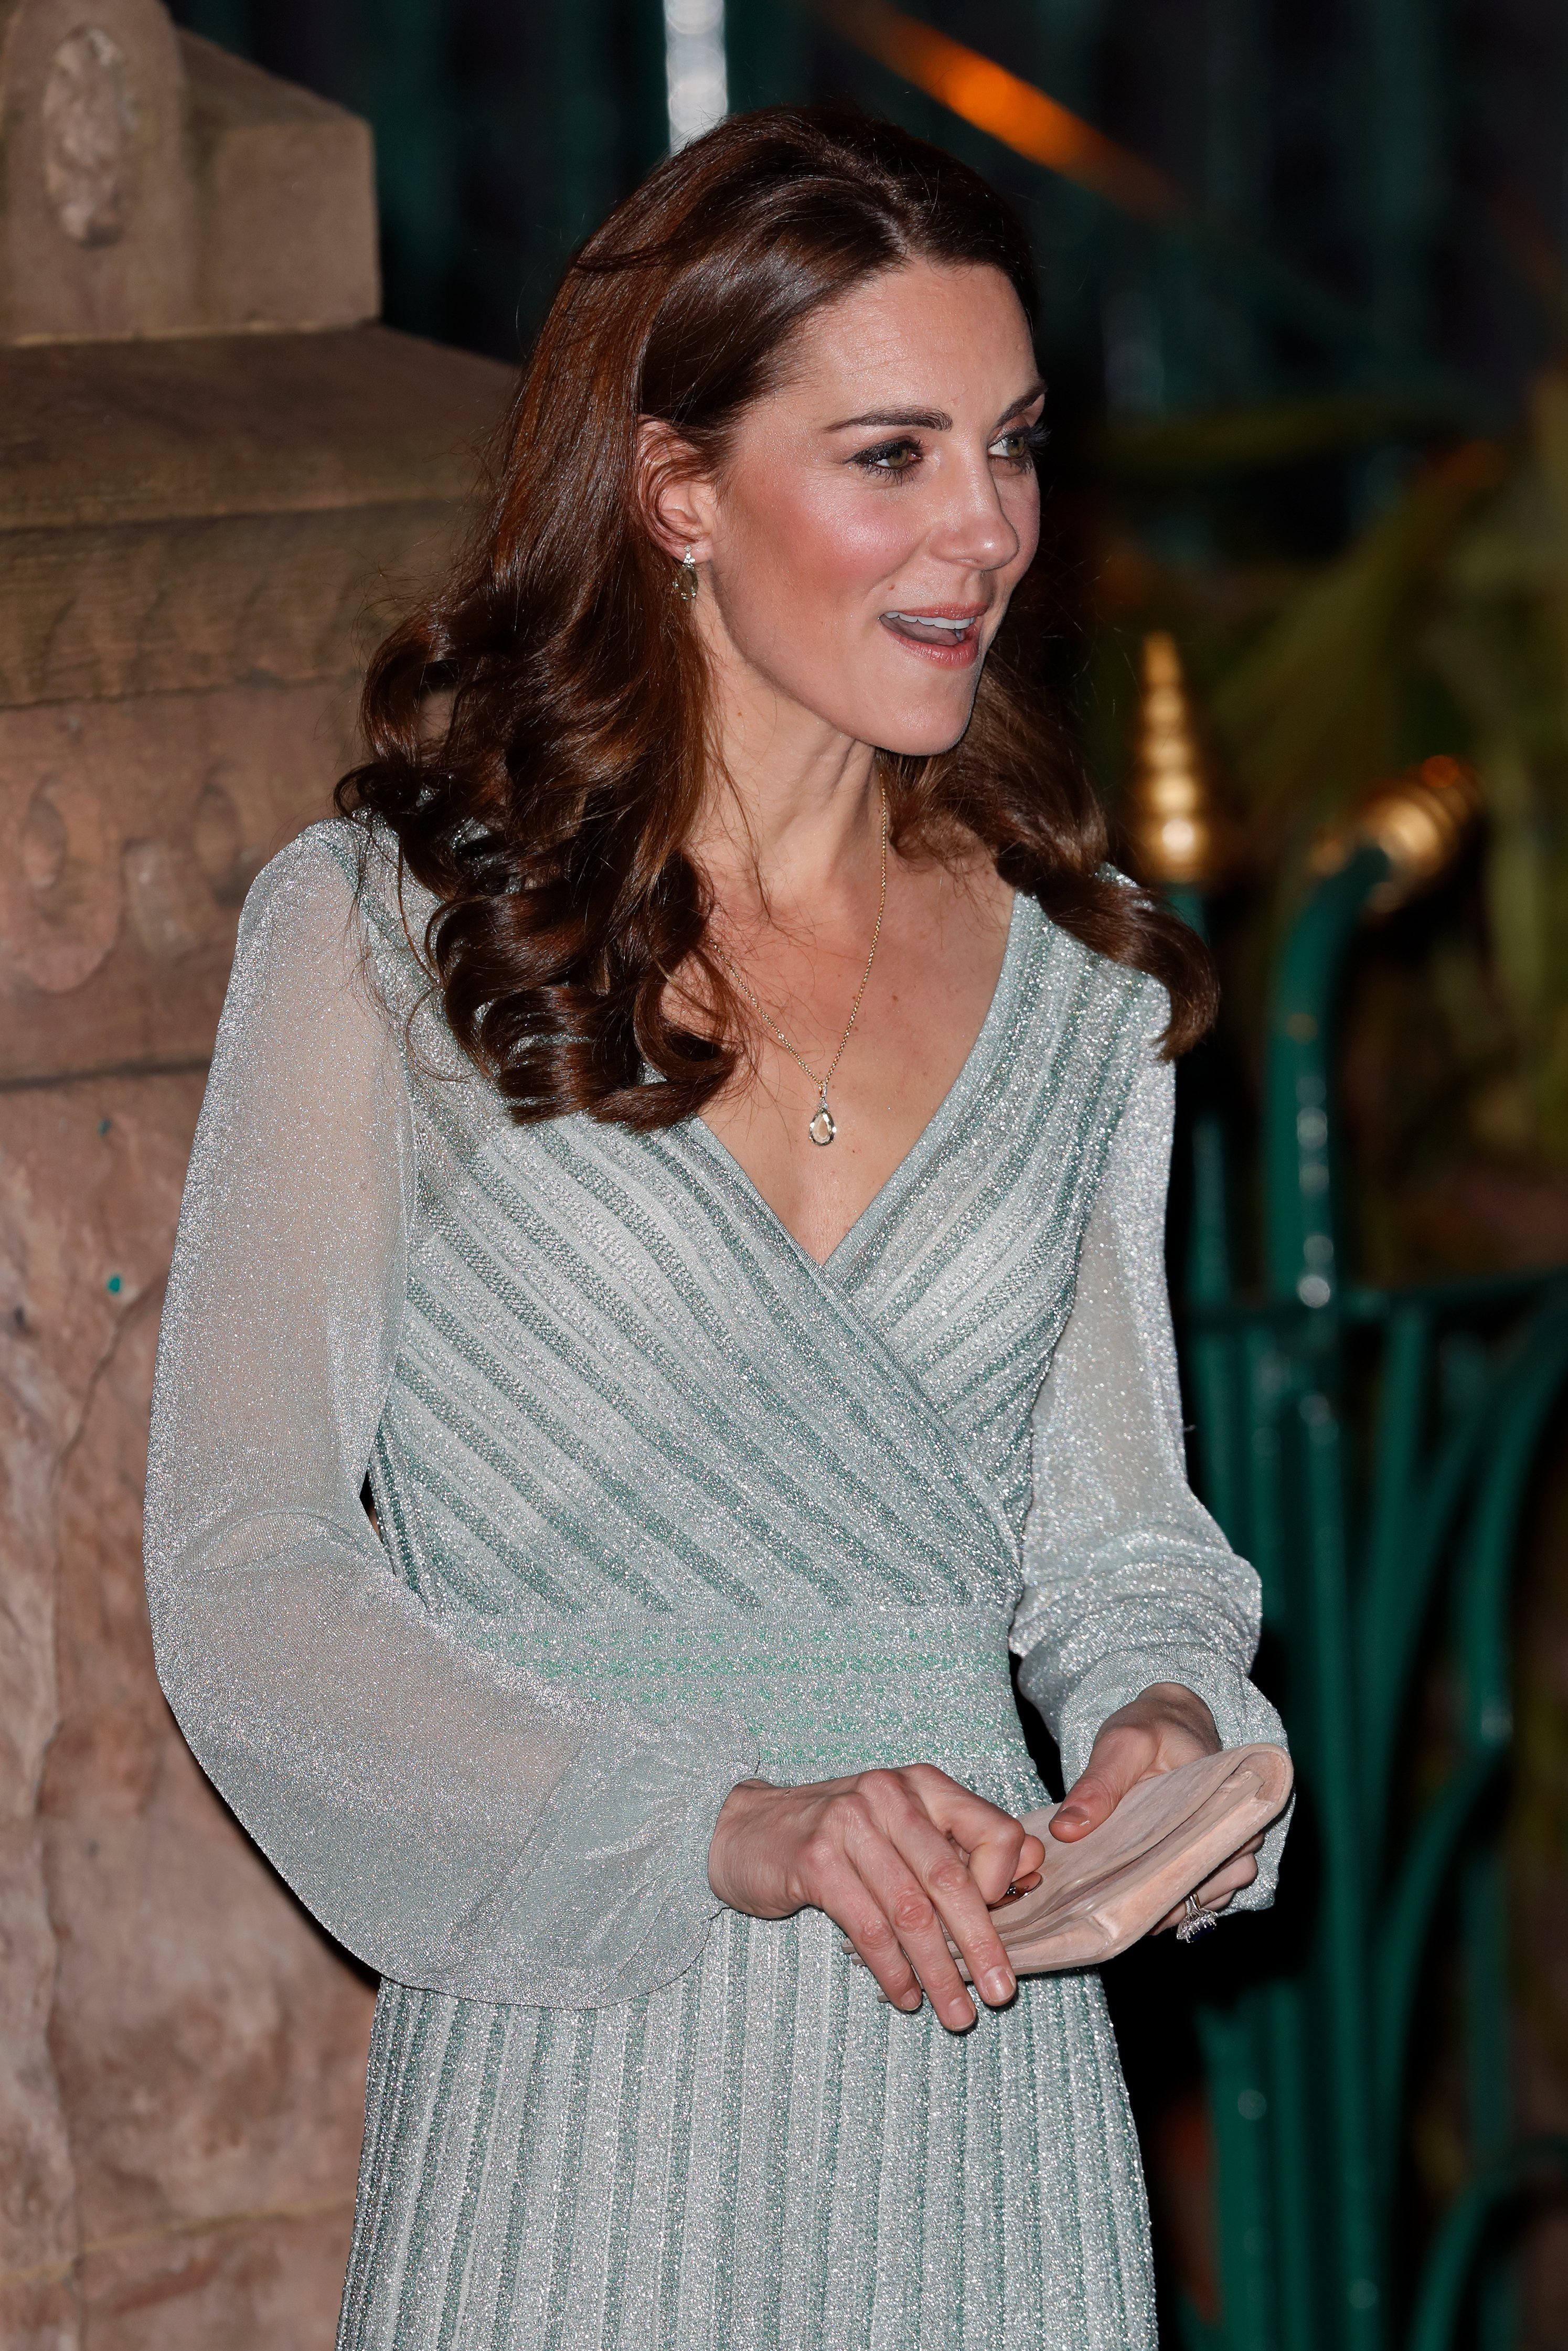 Kate Middleton in Belfast, Northern Ireland in February 2019   Photo: Getty Images